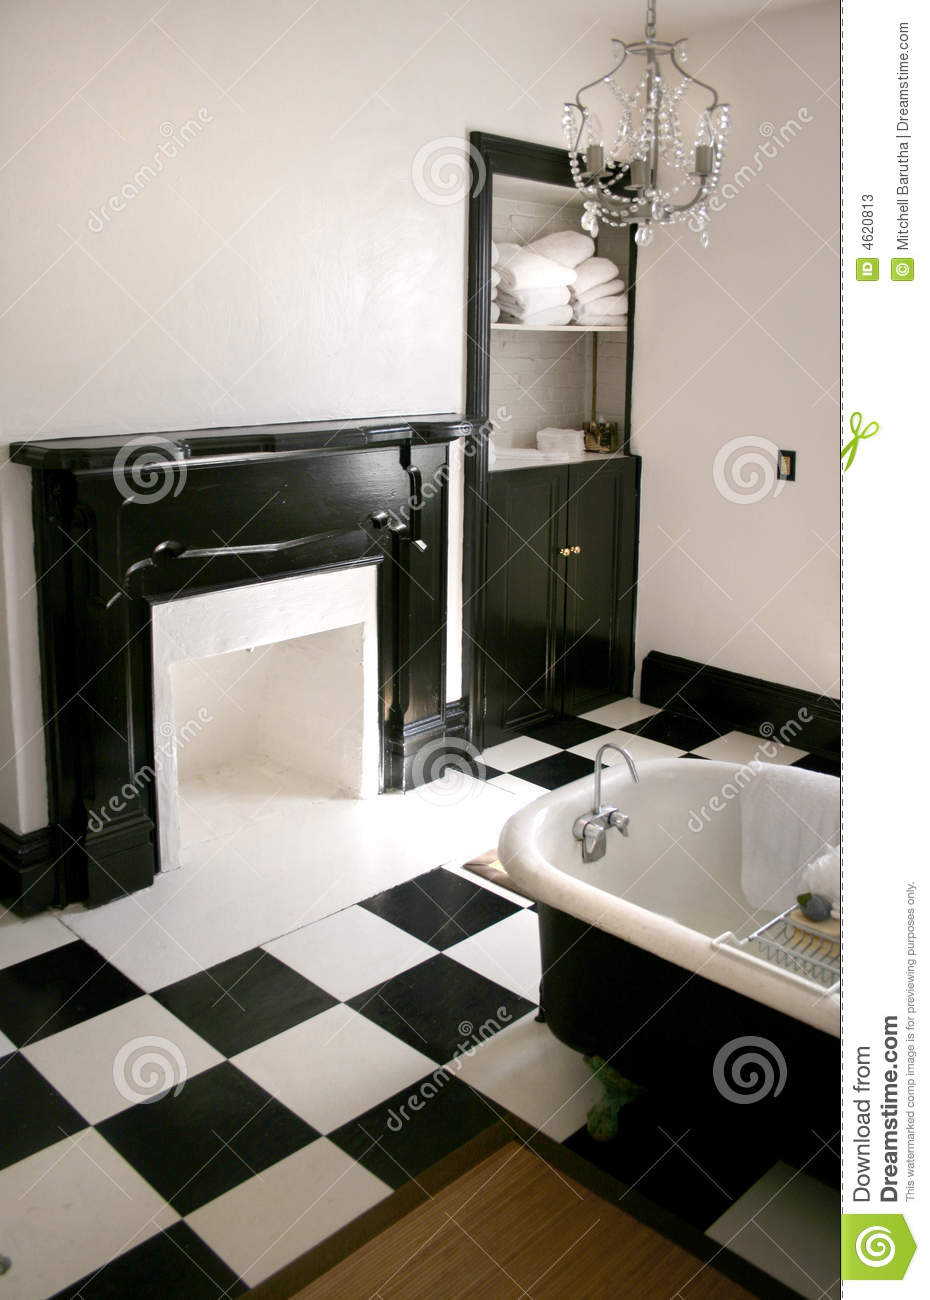 Cuartos De Baño Con Tina:Black and White Bathroom with Claw Foot Tub